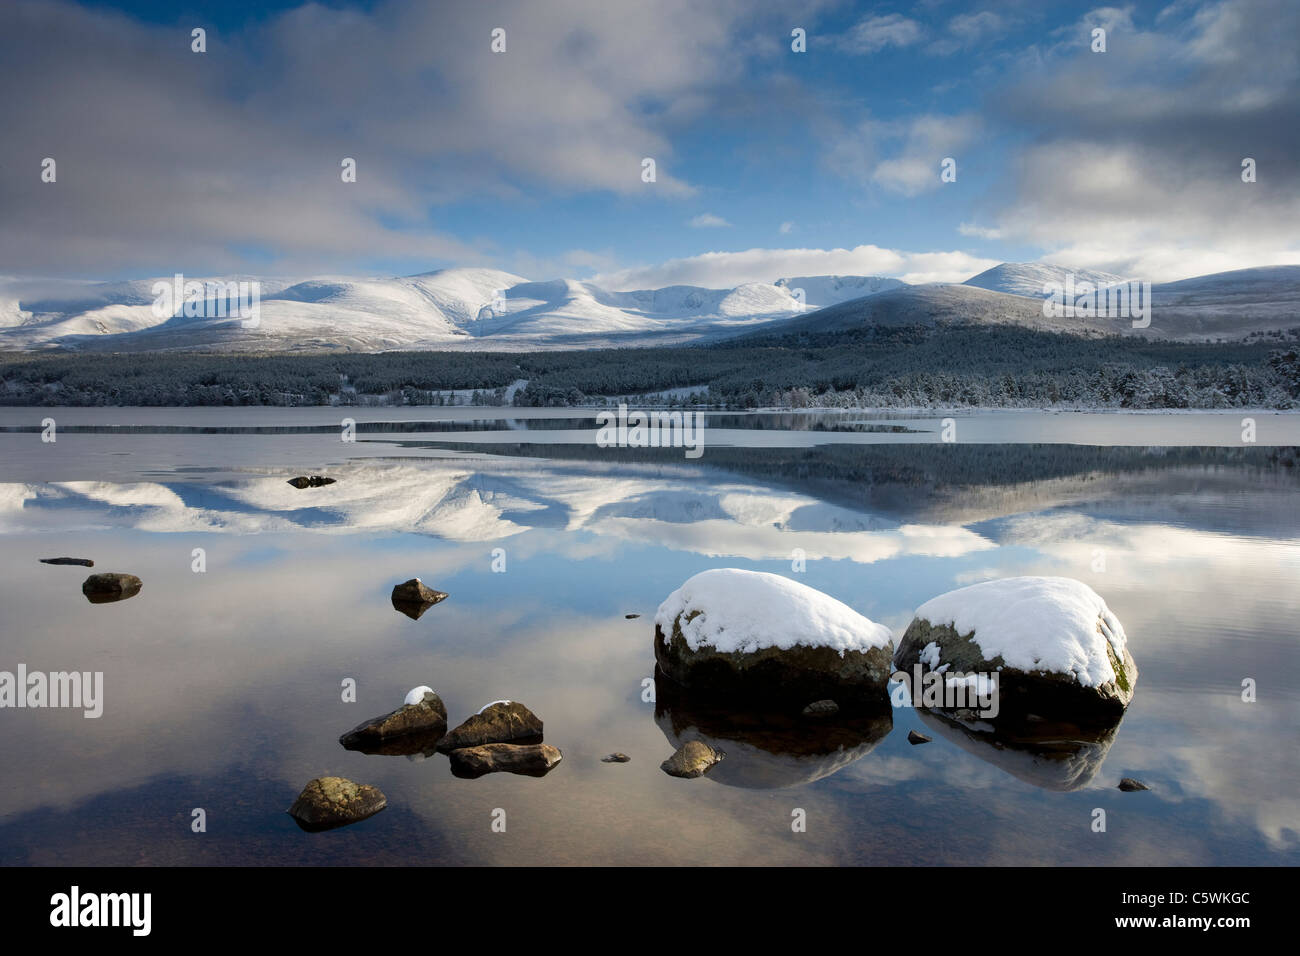 Loch Morlich and Cairngorm Mountains in winter, Cairngorms National Park, Scotland, Great Britain. Stock Photo